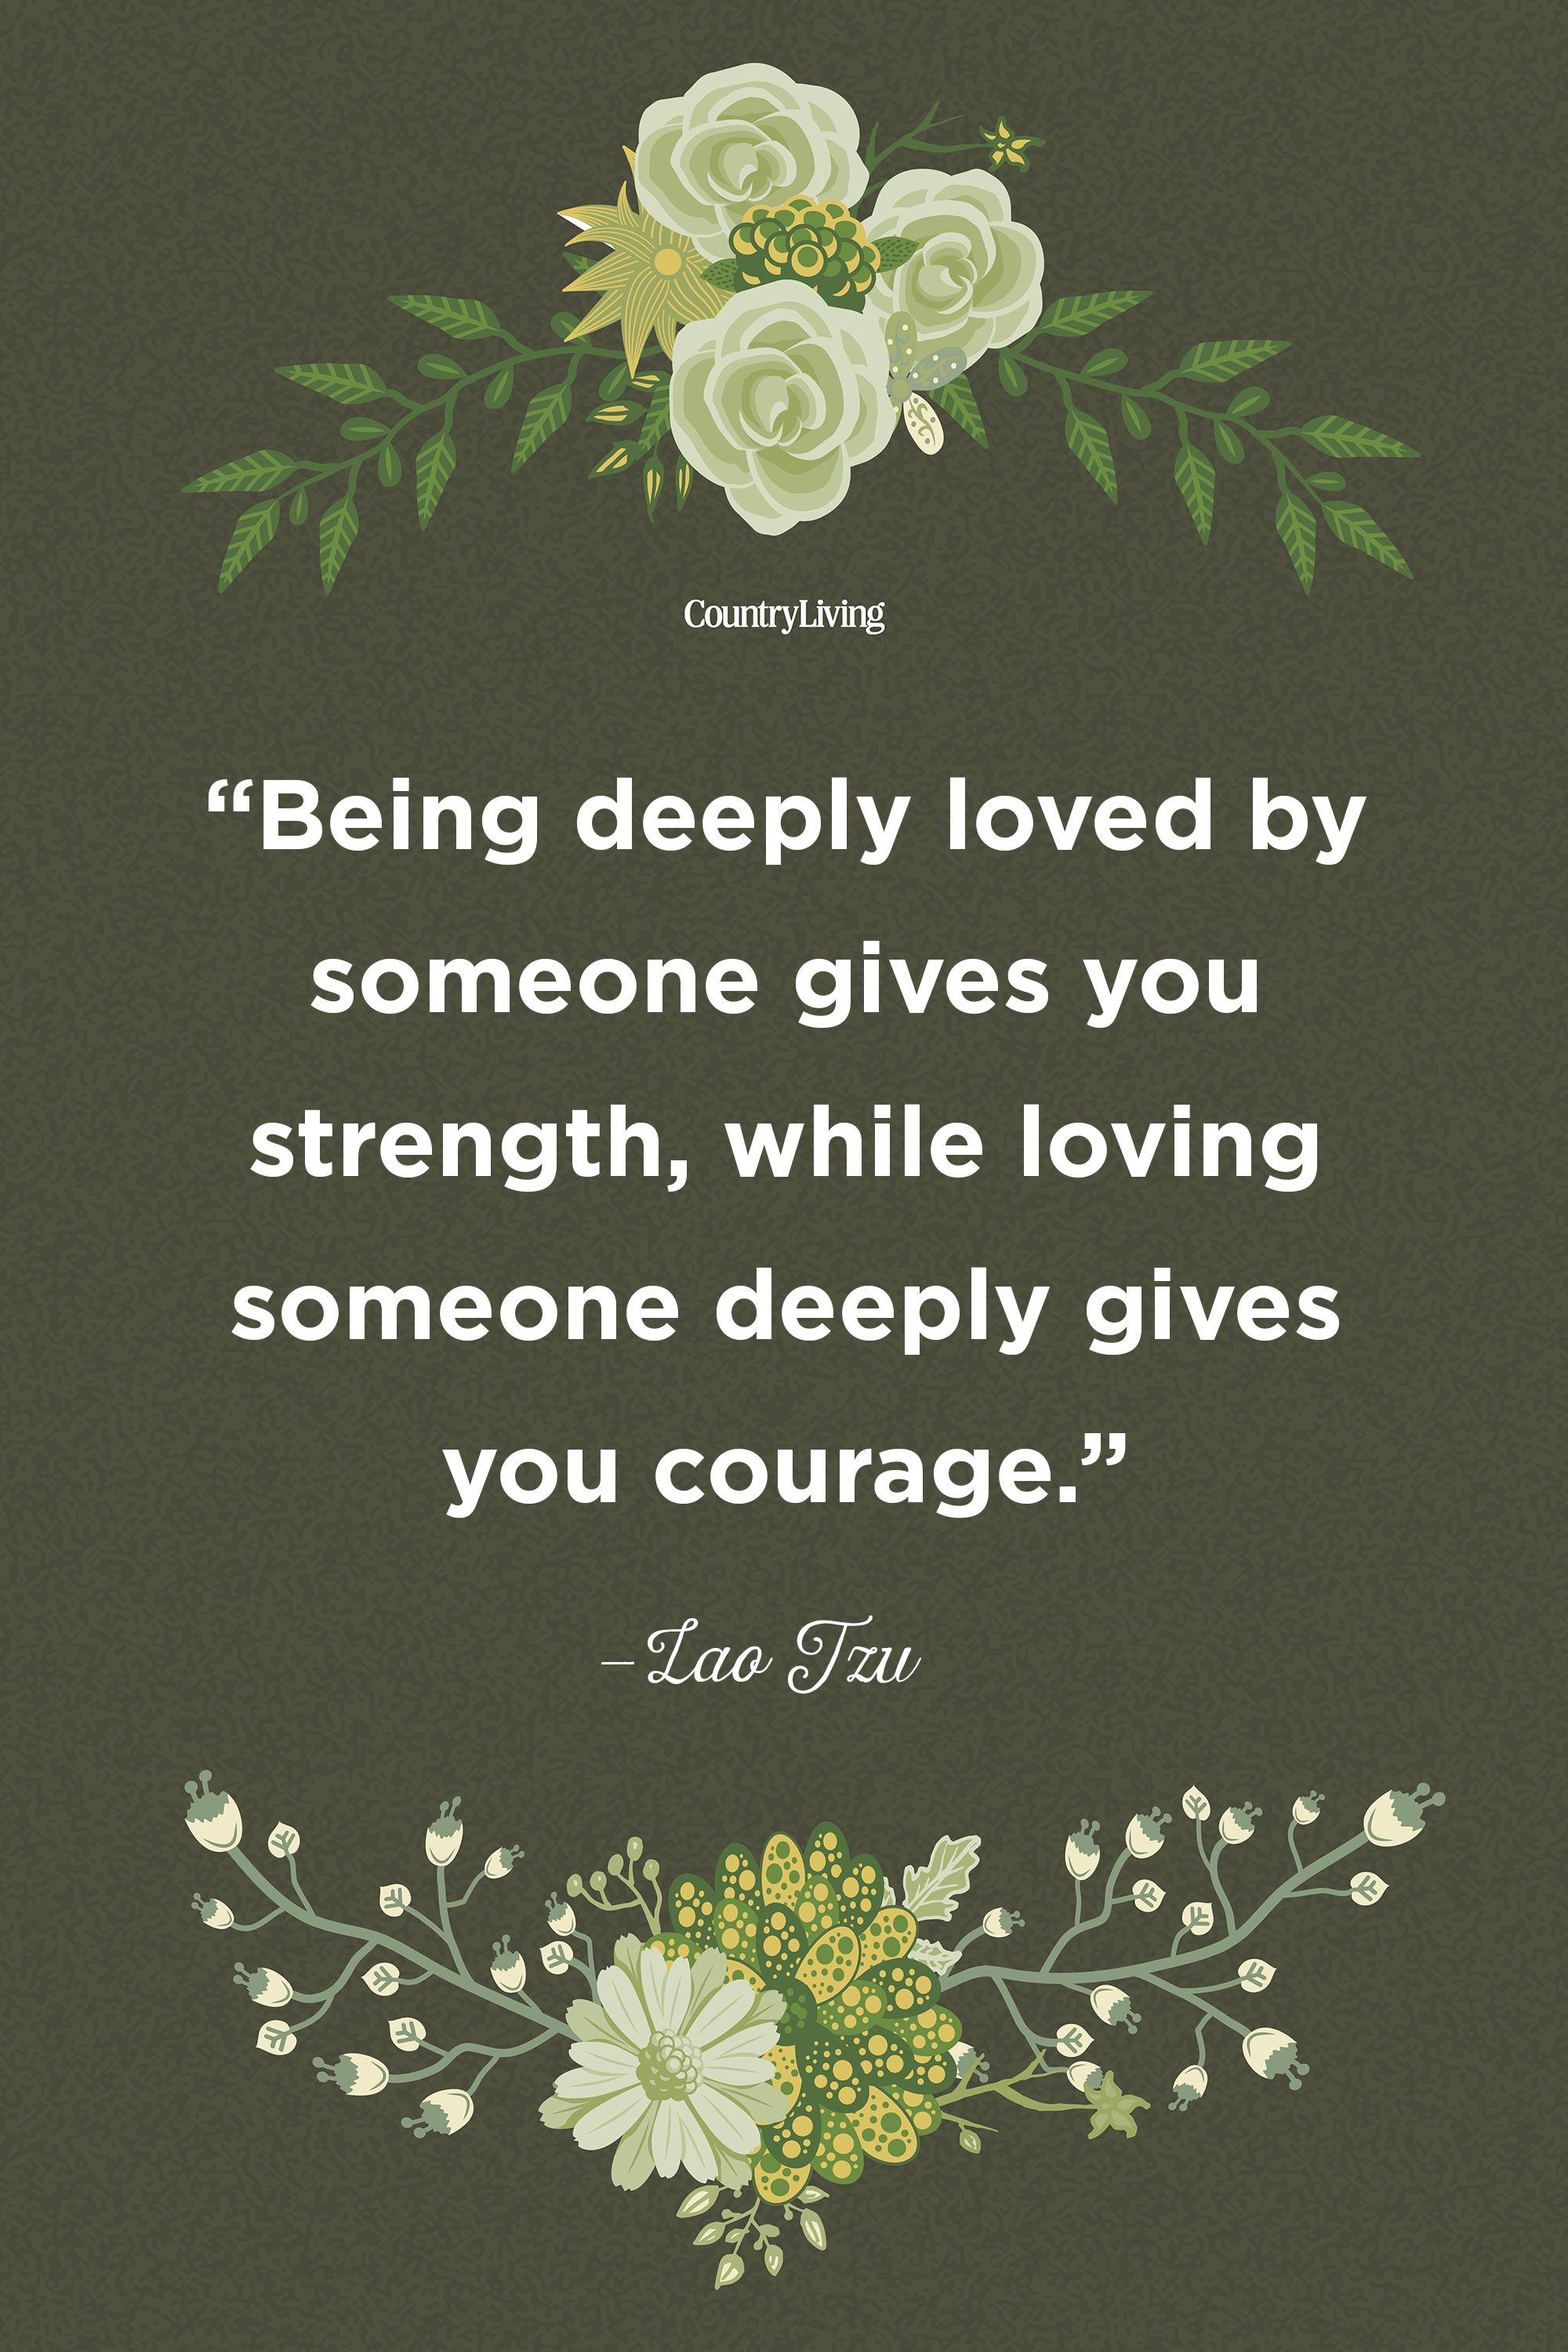 The Most Romantic Love Quotes For Her 10 Of The Most Romantic Love Quotes For Him  Lao Tzu Quotes